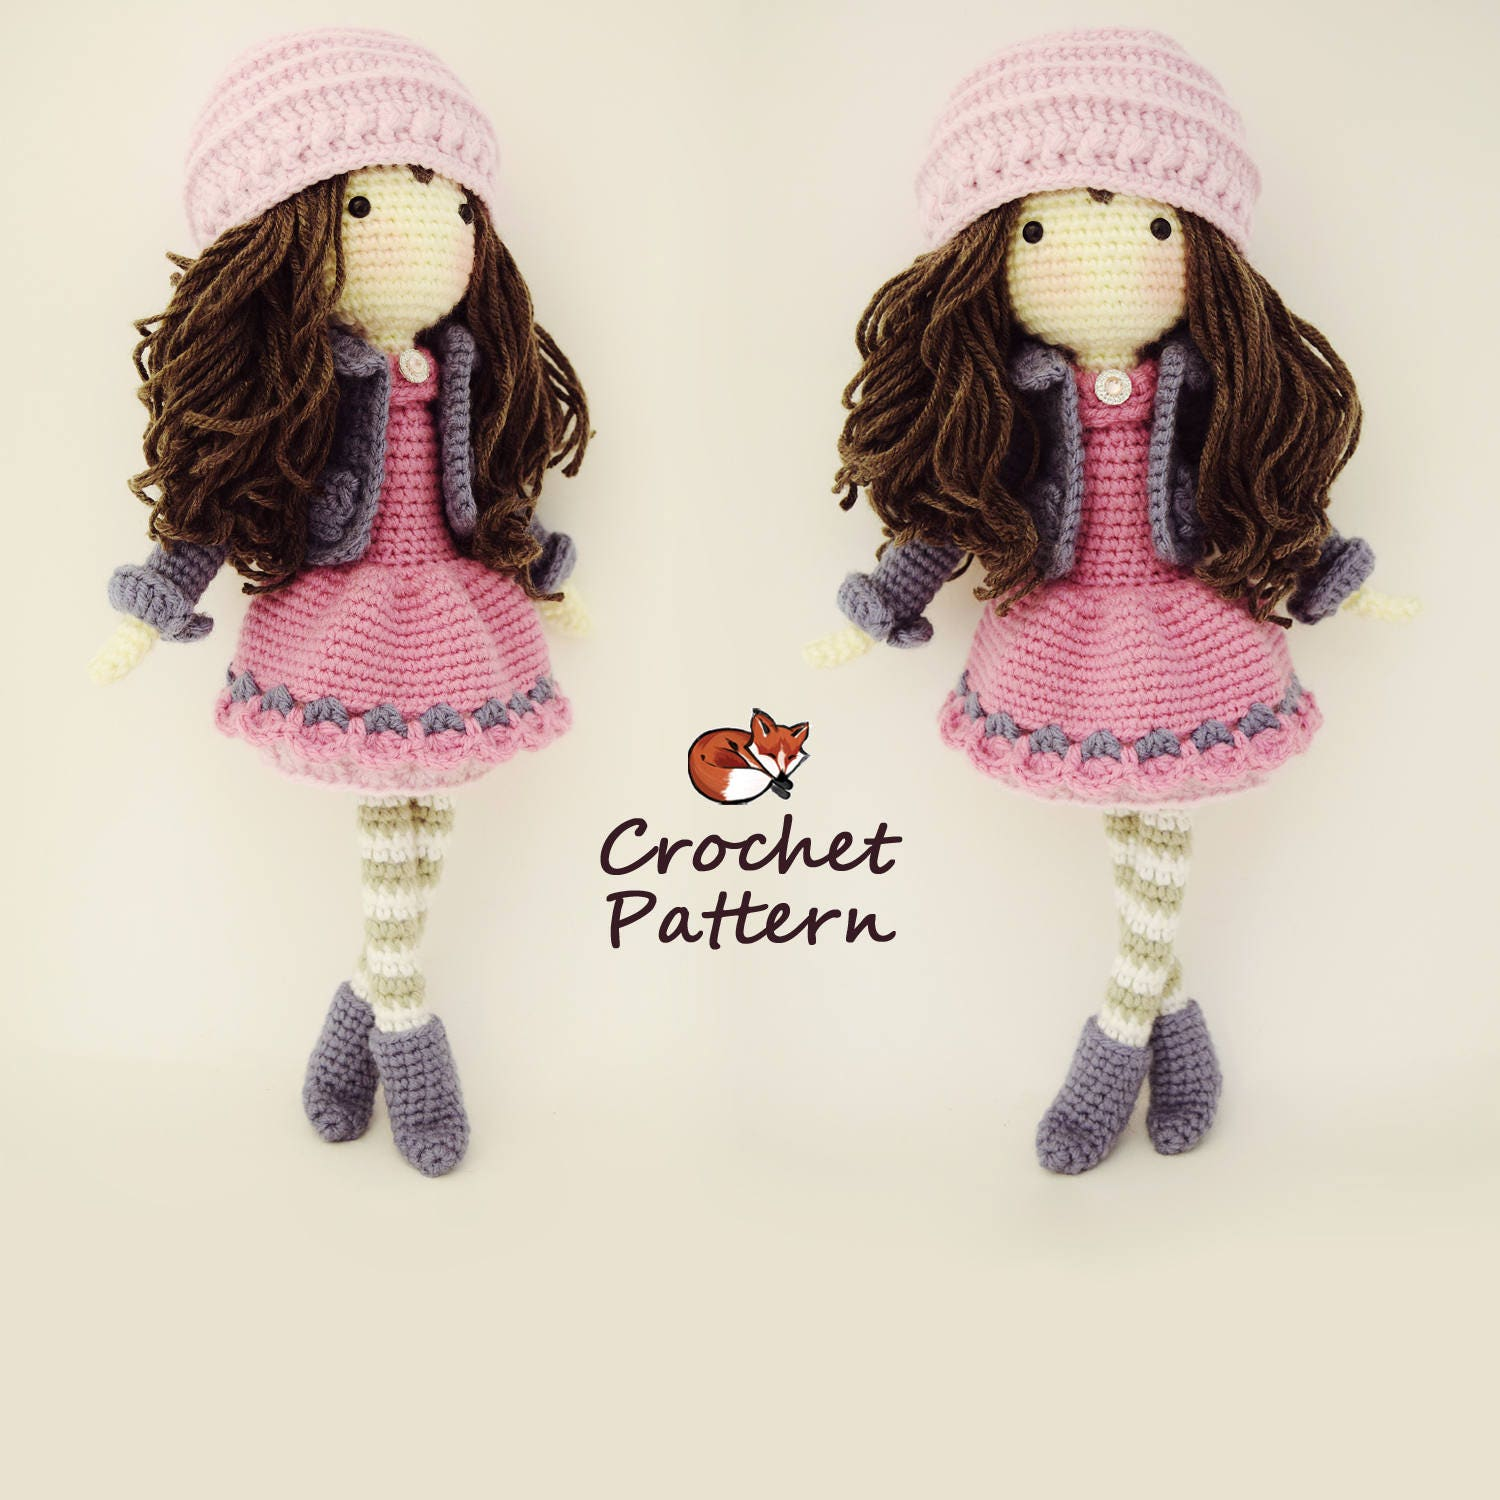 Crochet Doll Pattern Awesome Decorating Design